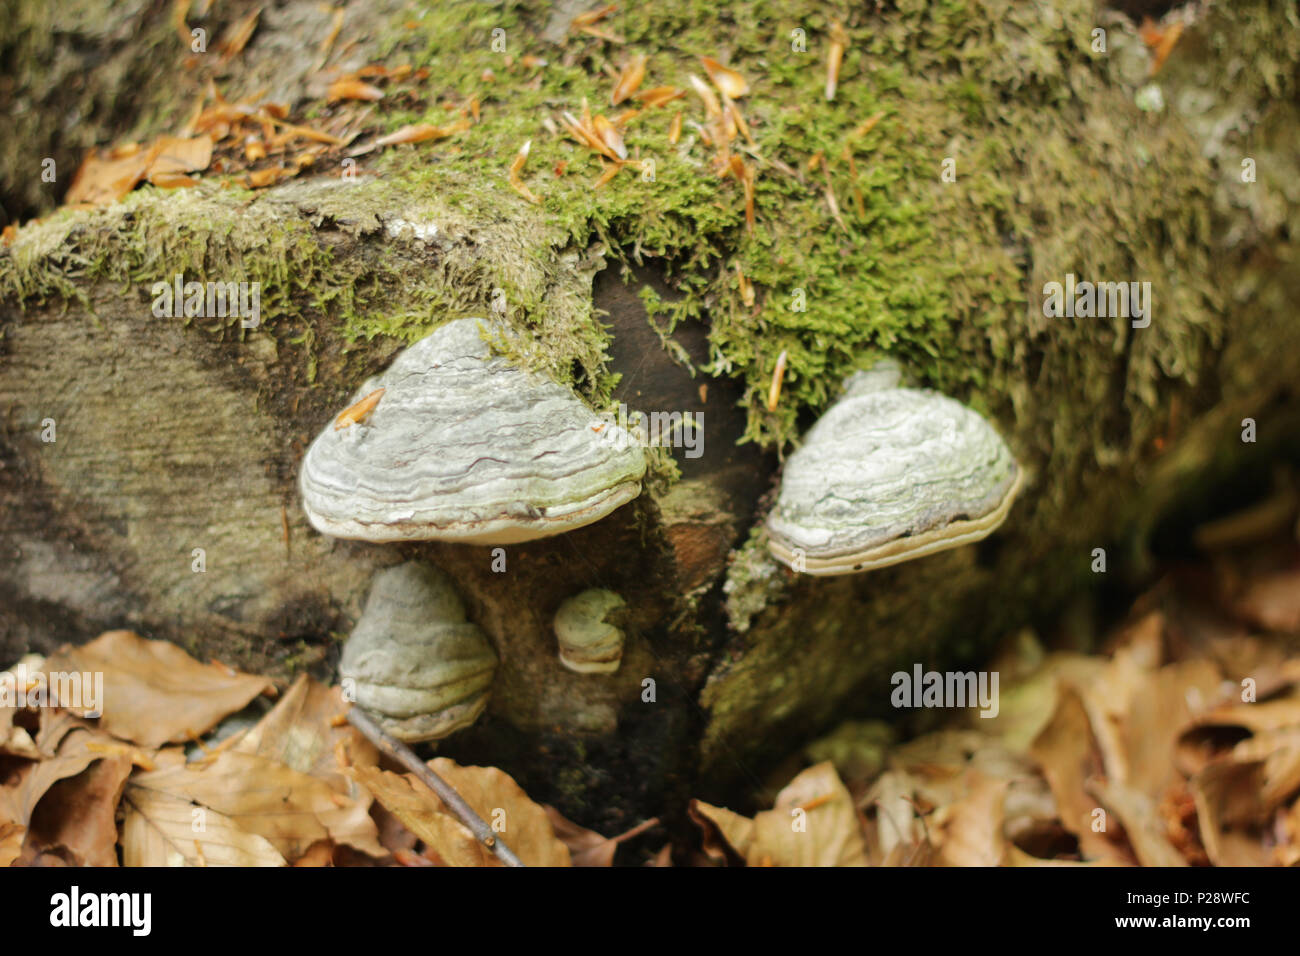 Moss on green log in forest. - Stock Image